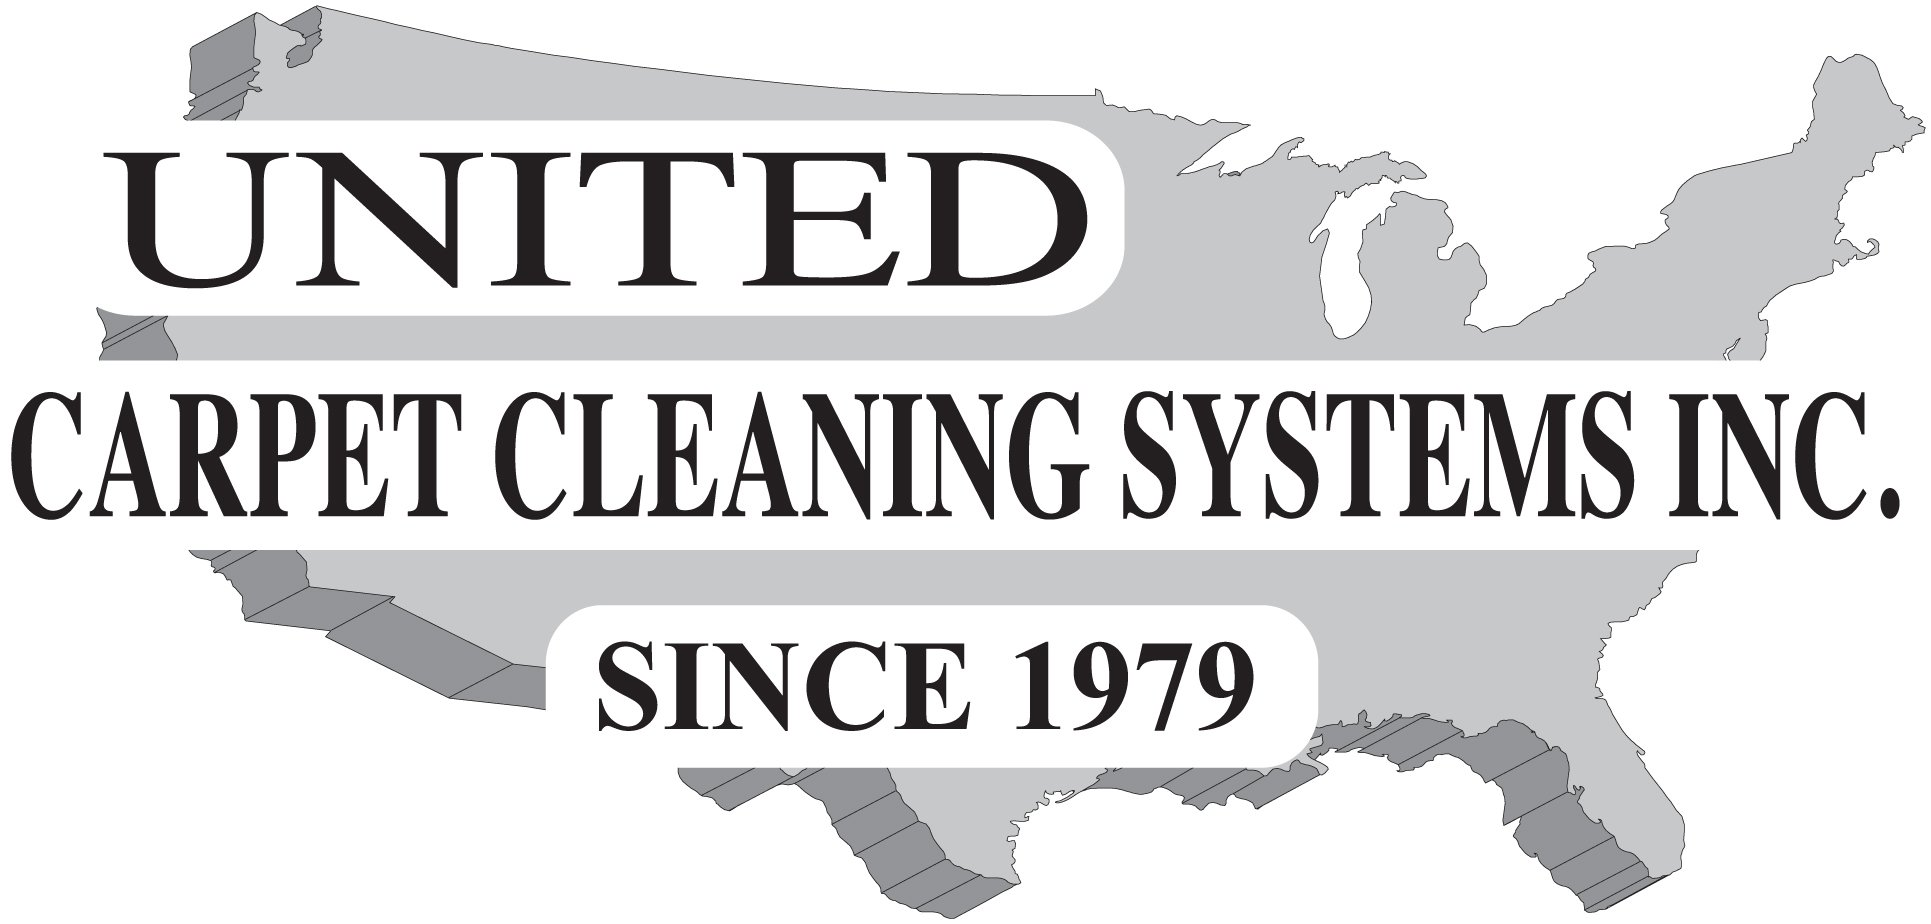 United Carpet Cleaning